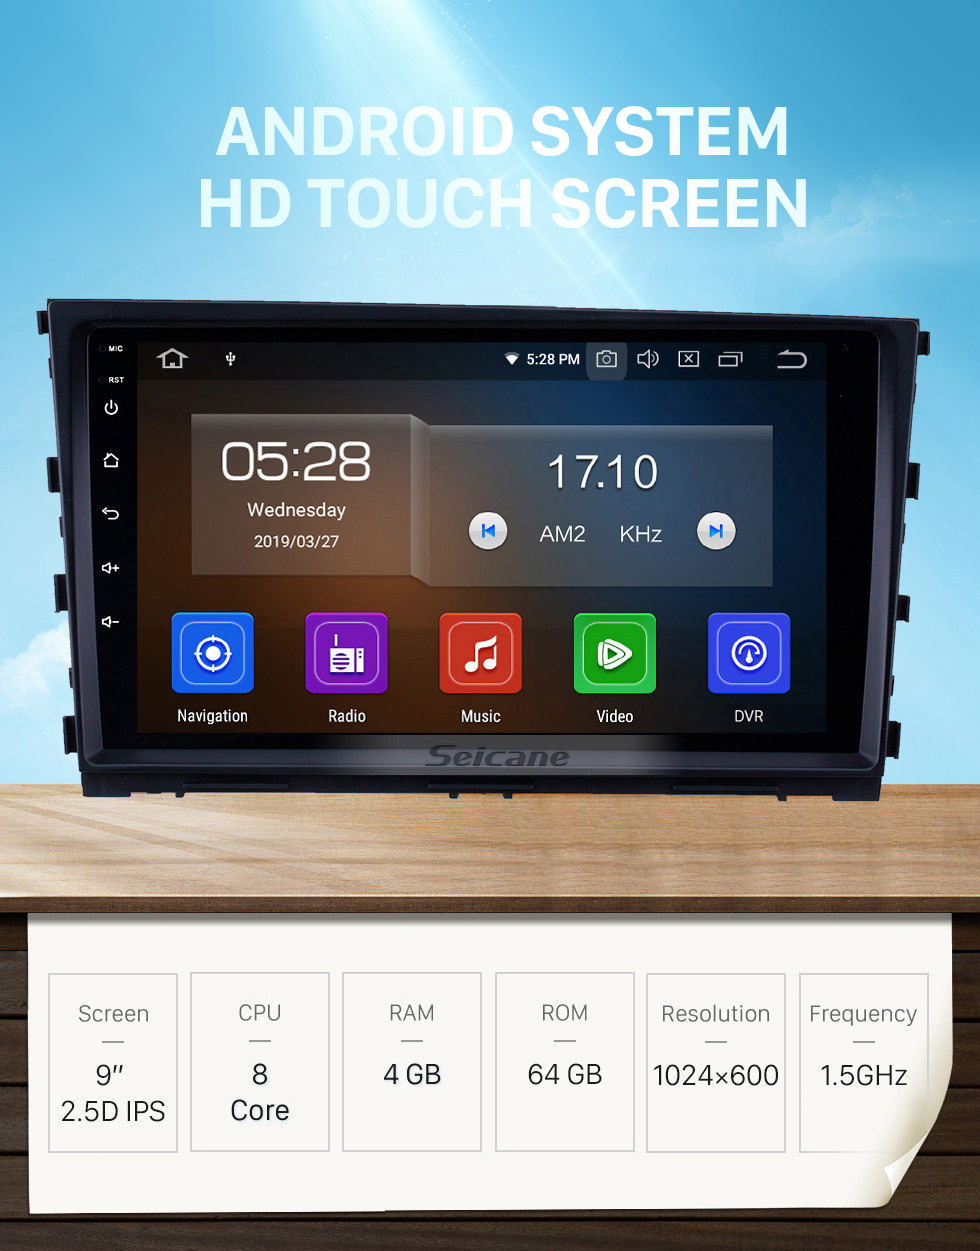 Seicane Android 10.0 9 inch GPS Navigation Radio for 2013-2016 Hyundai MISTRA with HD Touchscreen Carplay Bluetooth WIFI USB AUX support Mirror Link OBD2 SWC